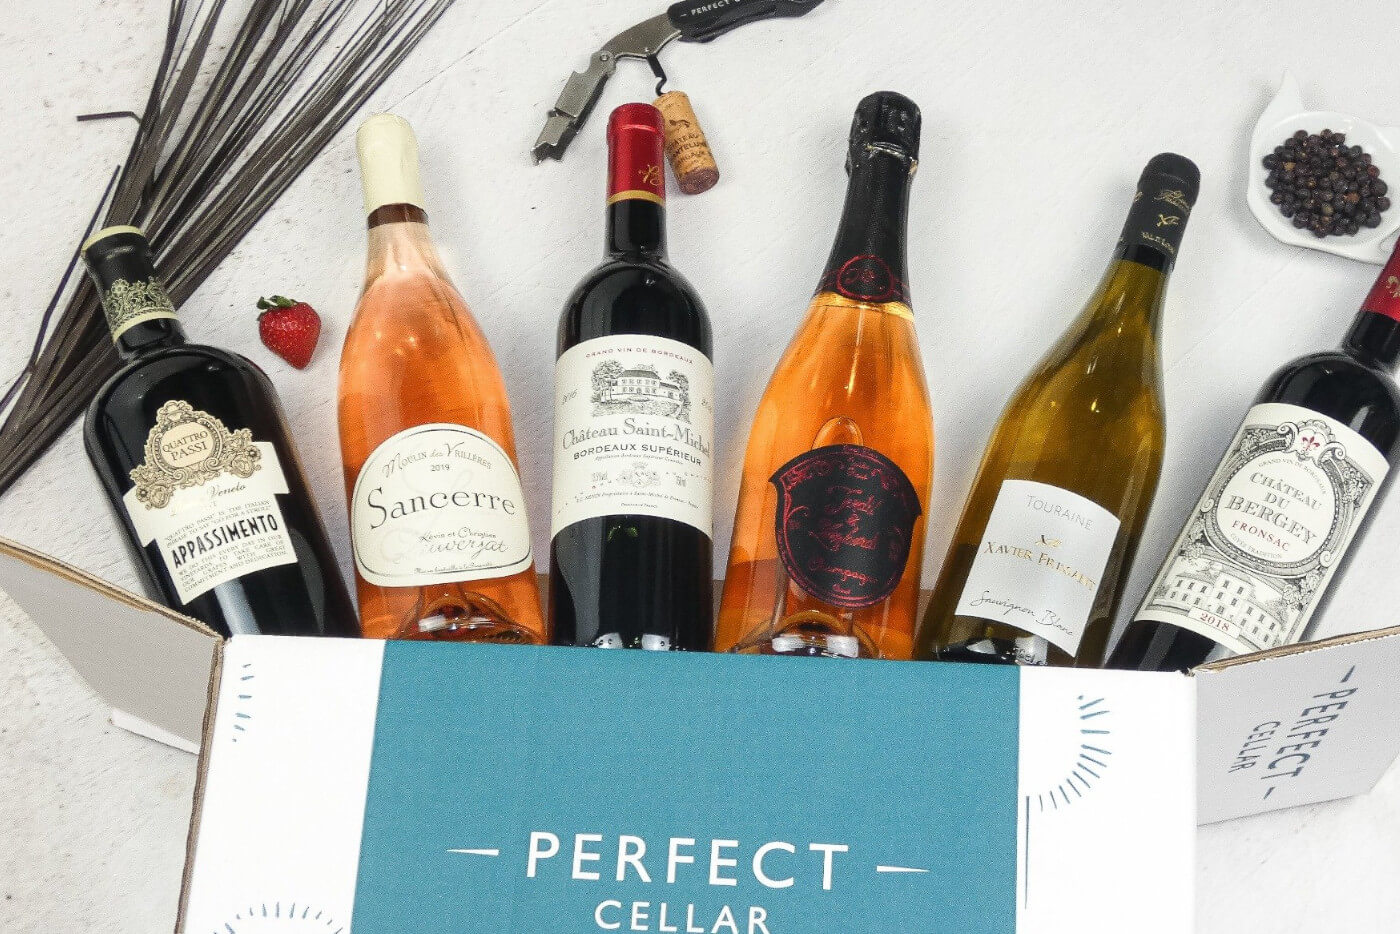 Box of Staycation Wines from Perfect Cellar